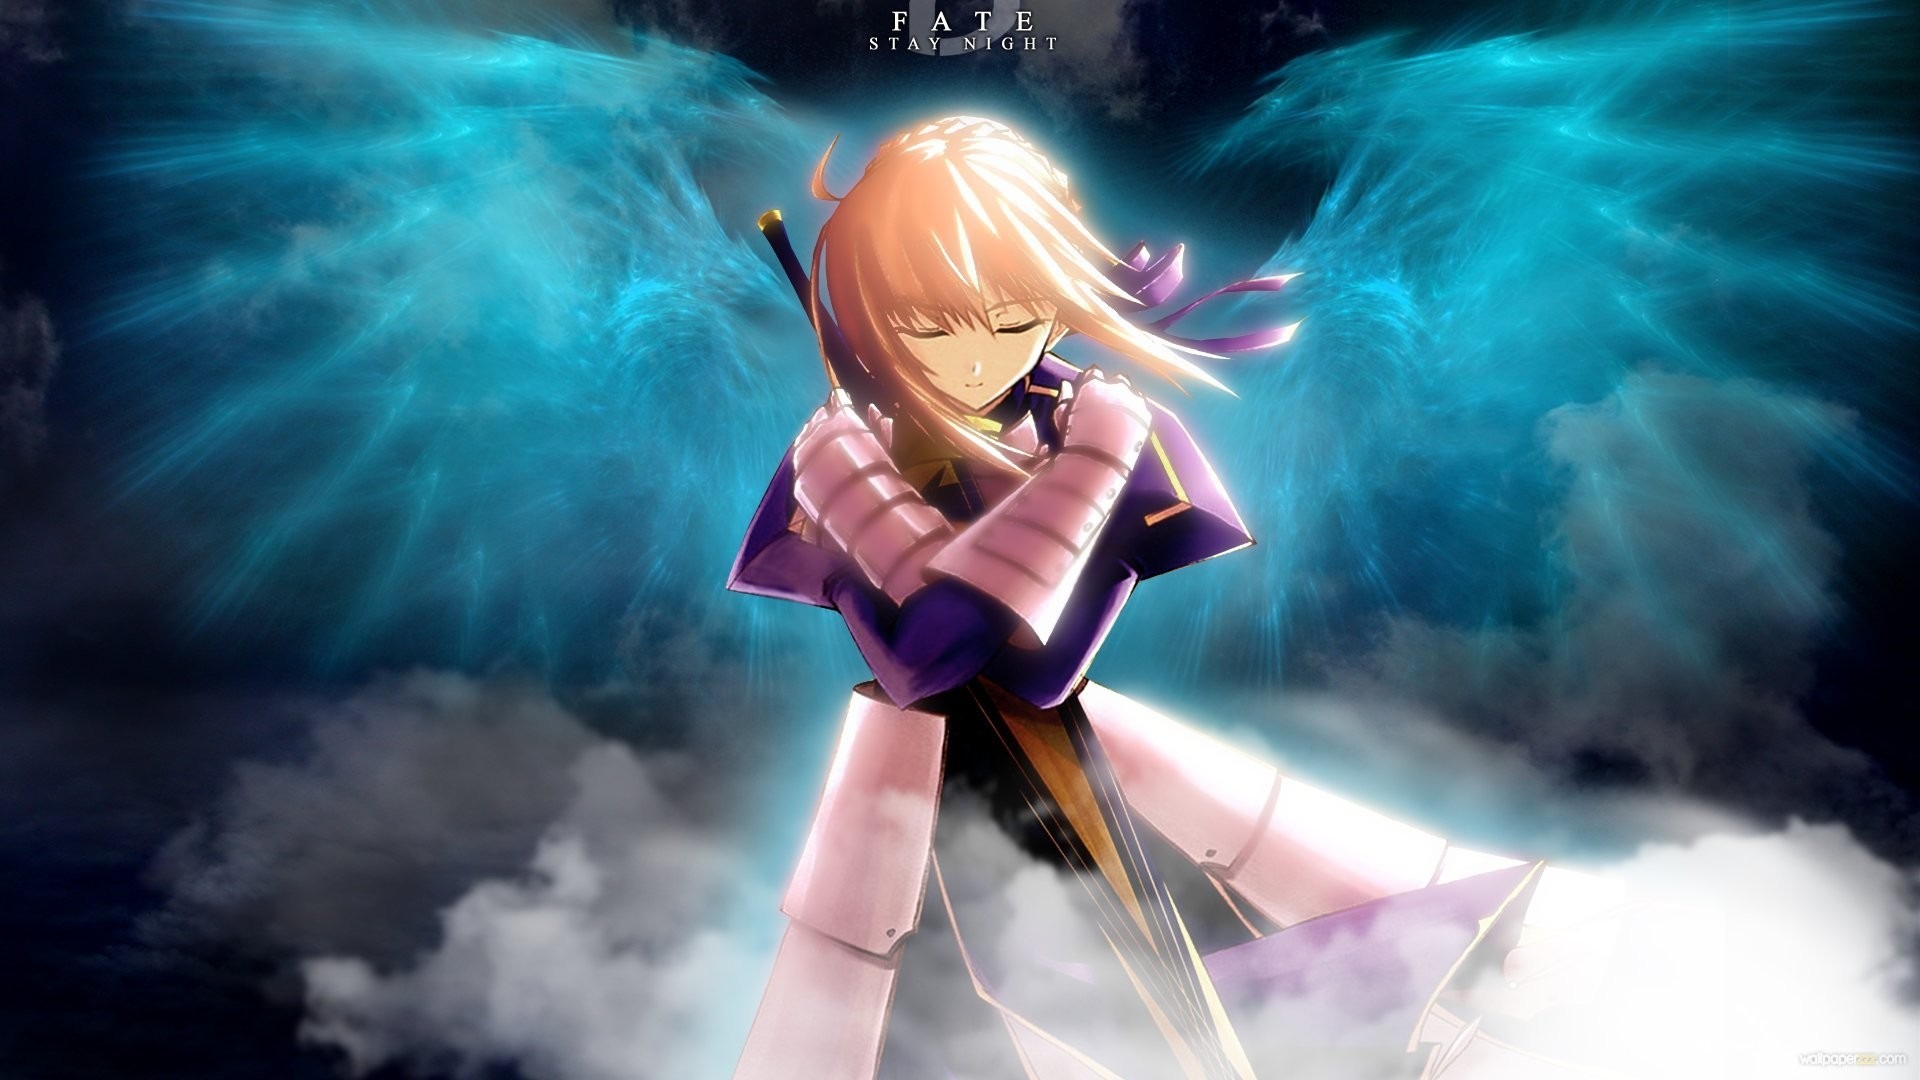 Epic anime wallpapers hd 59 images - Wallpapers hd anime ...